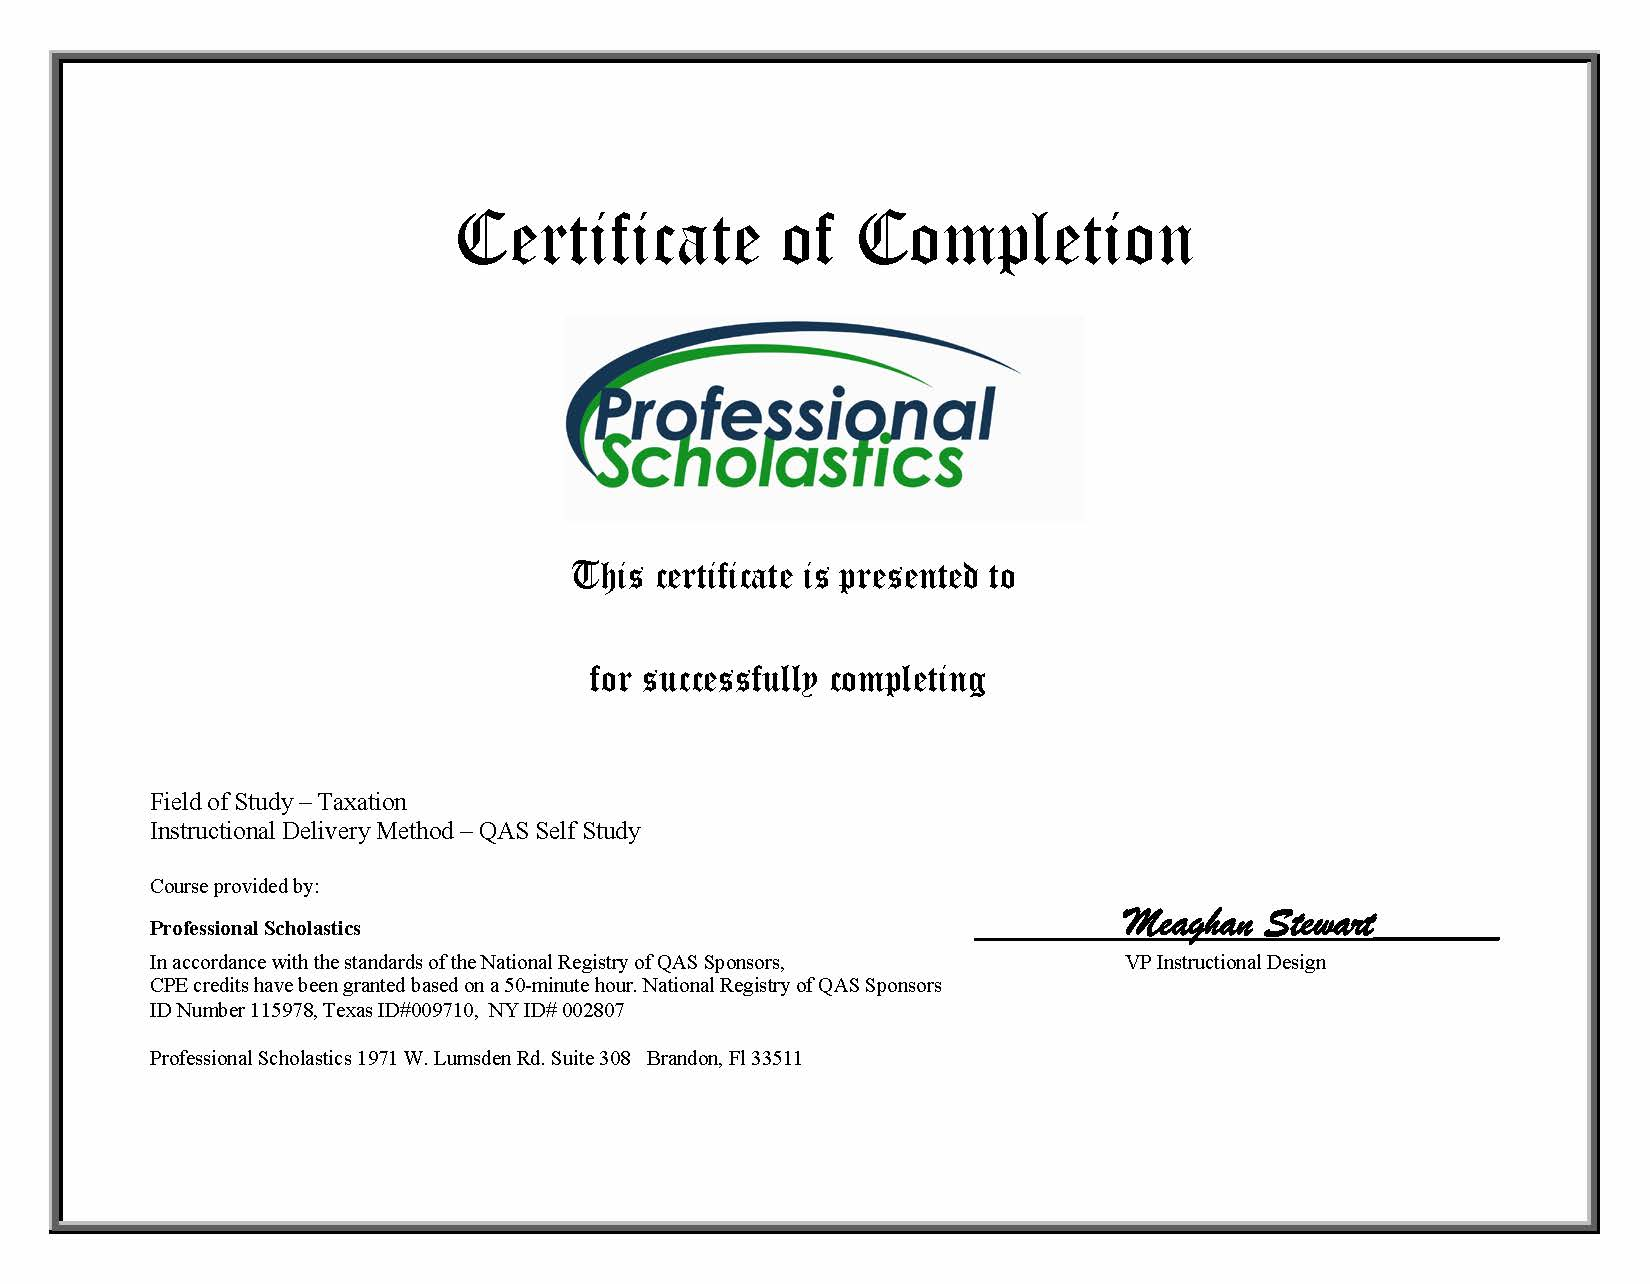 Cpecentral Guide To Bankruptcy 24 Credit Tax Course 5080